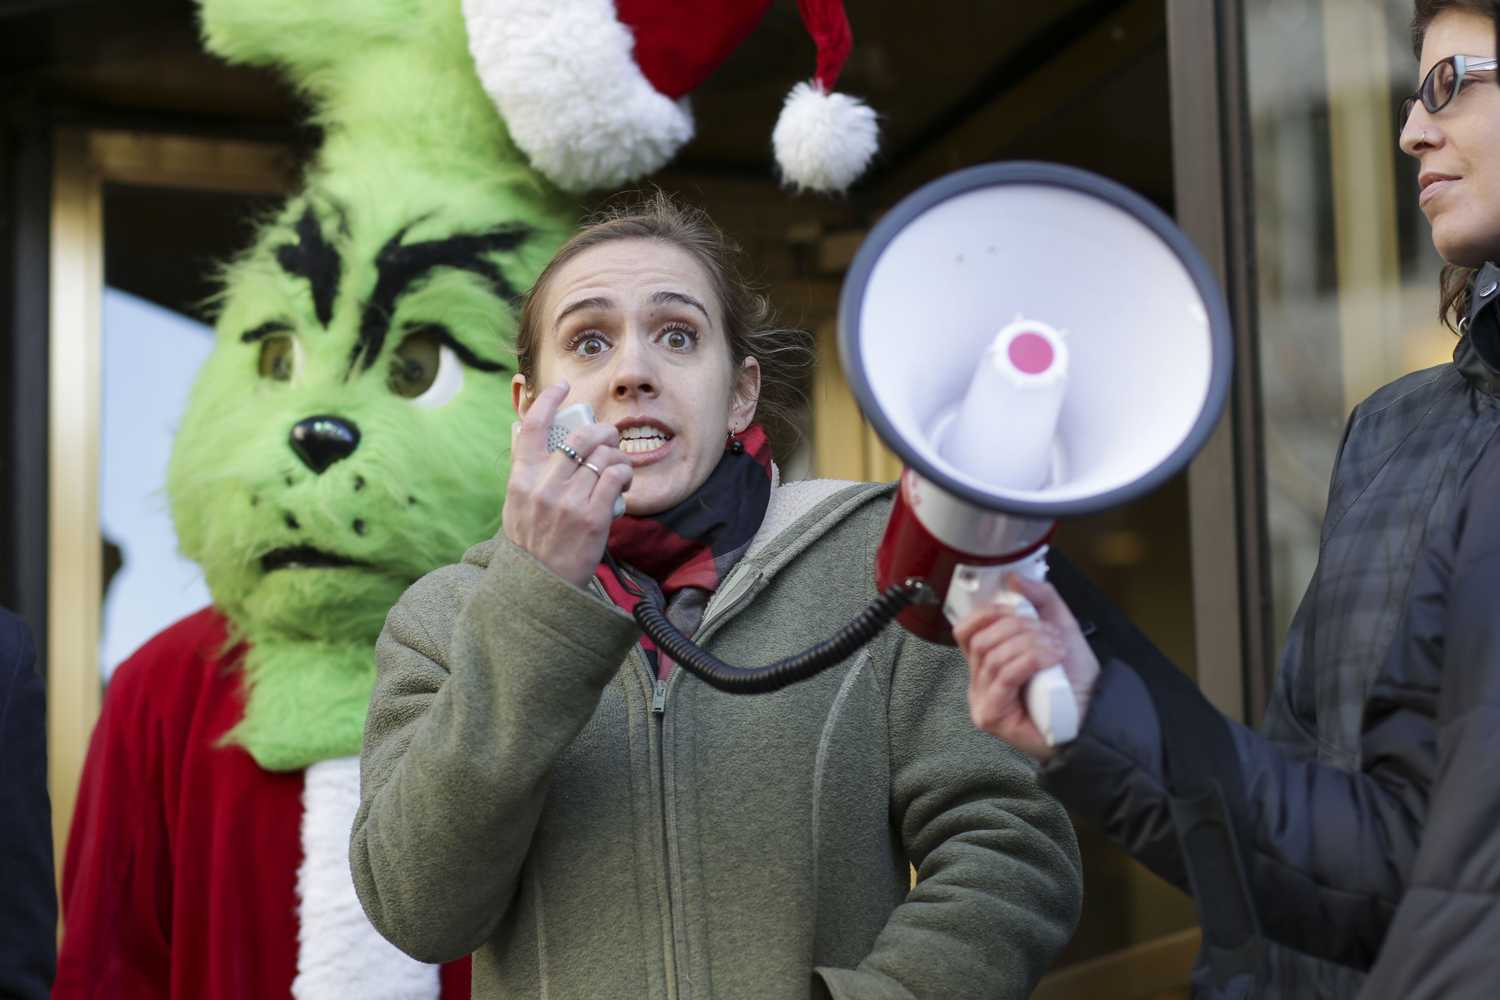 Caitlin Schroering spoke at the protest outside of U.S. Sen. Pat Toomey's Downtown office Wednesday afternoon. (Photo by Thomas Yang | Senior Staff Photographer)